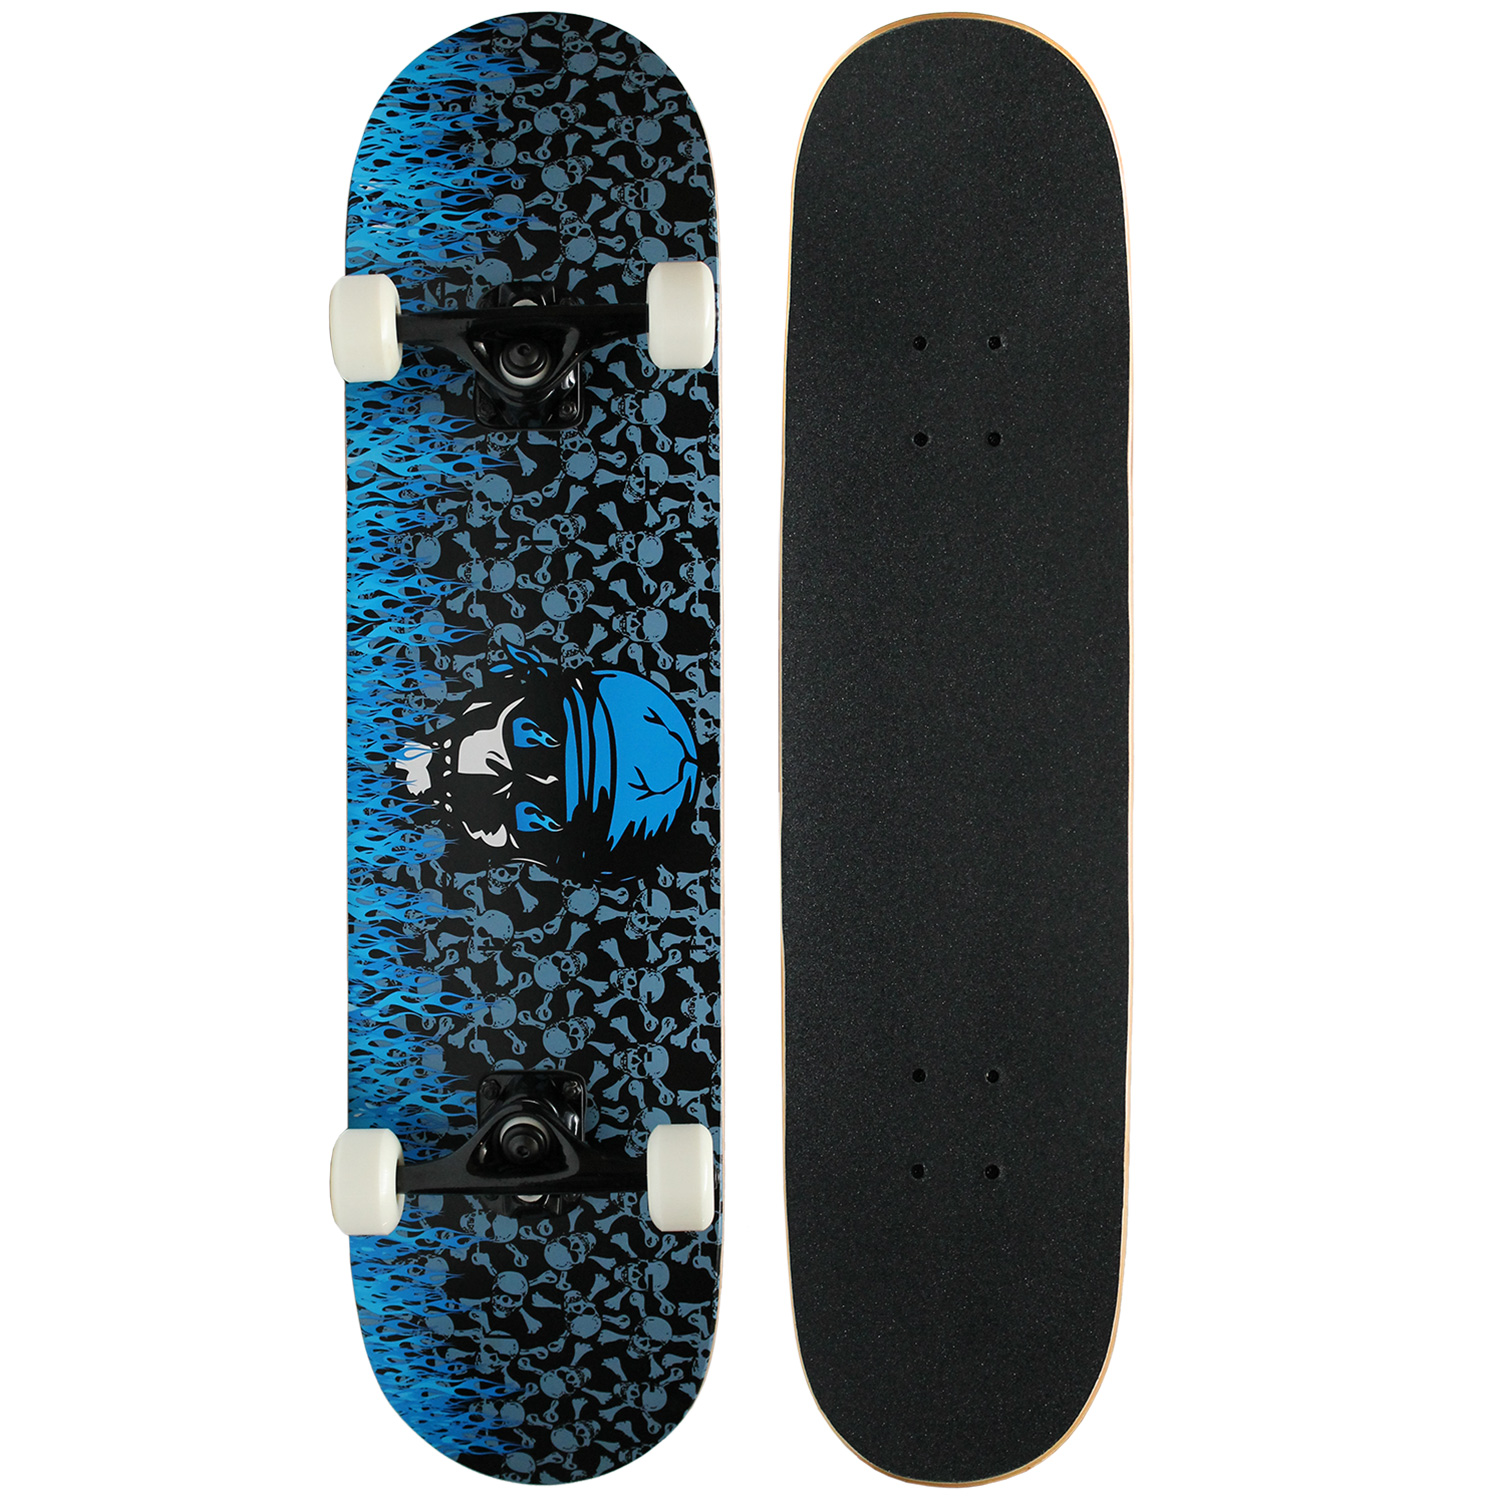 PRO Skateboard Complete KROWN Blue Flame 7.75 in - FREE SHIPPING